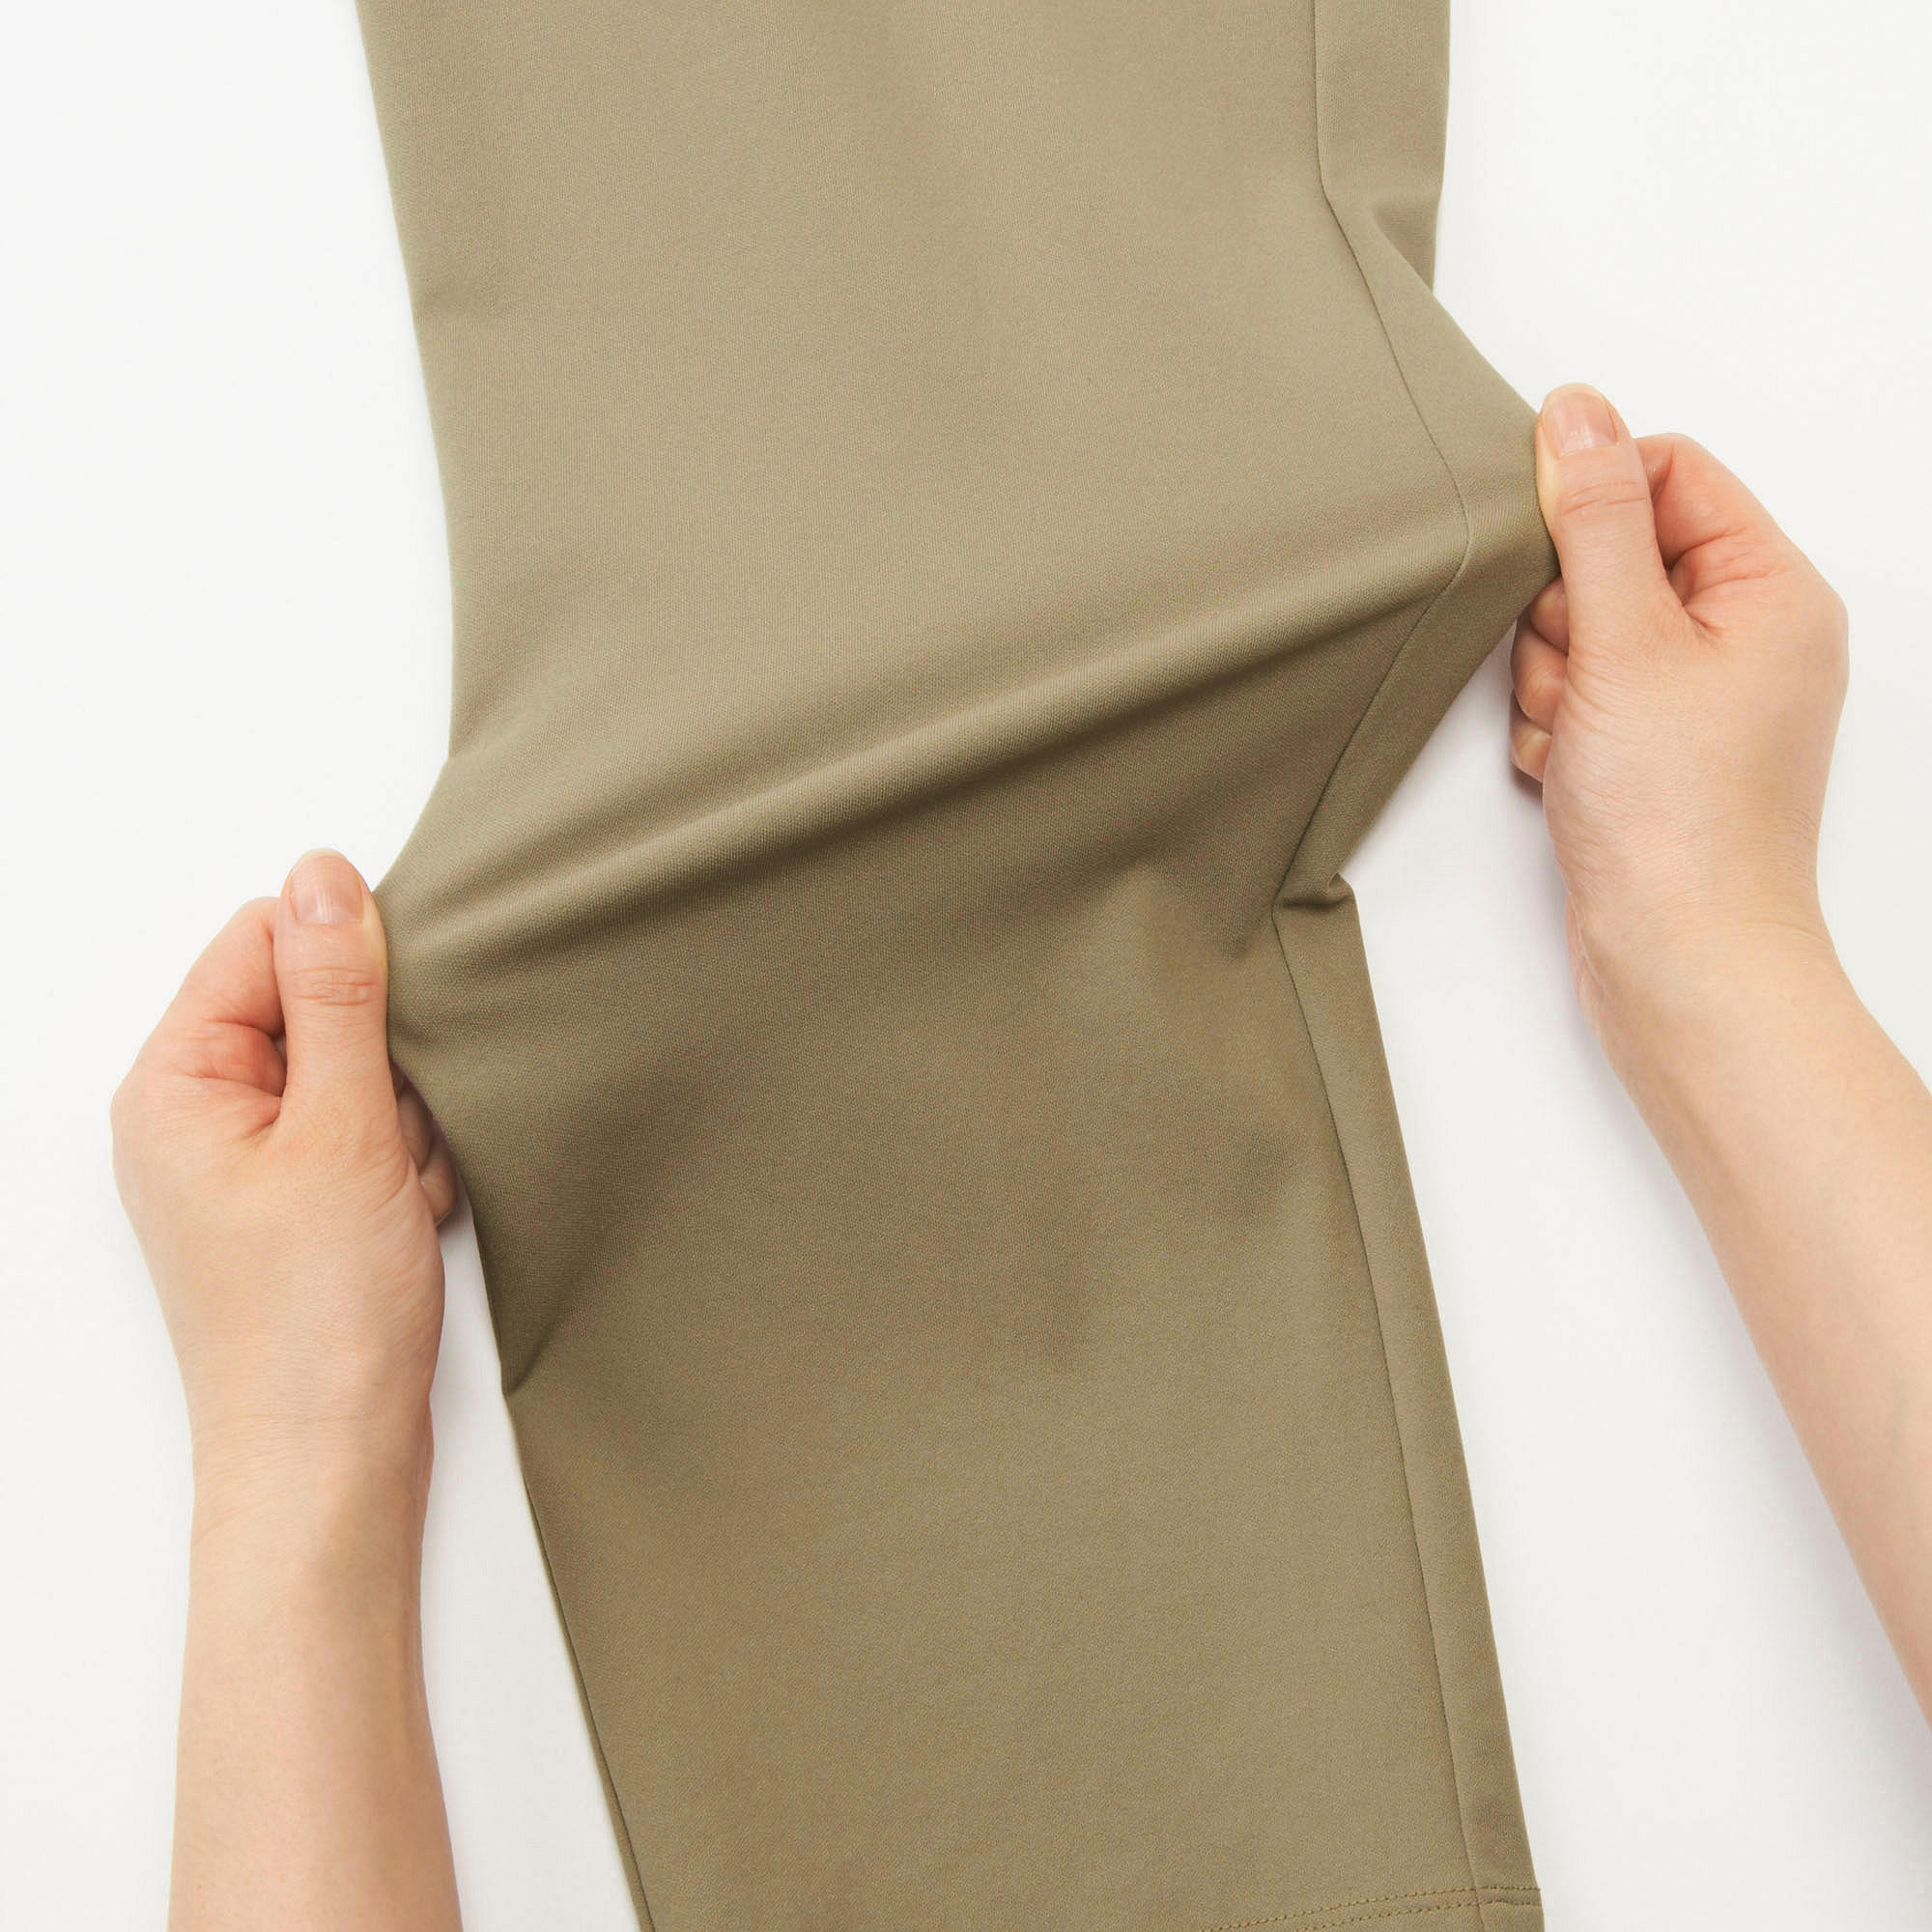 Super stretchy jersey knit material expands in all directions